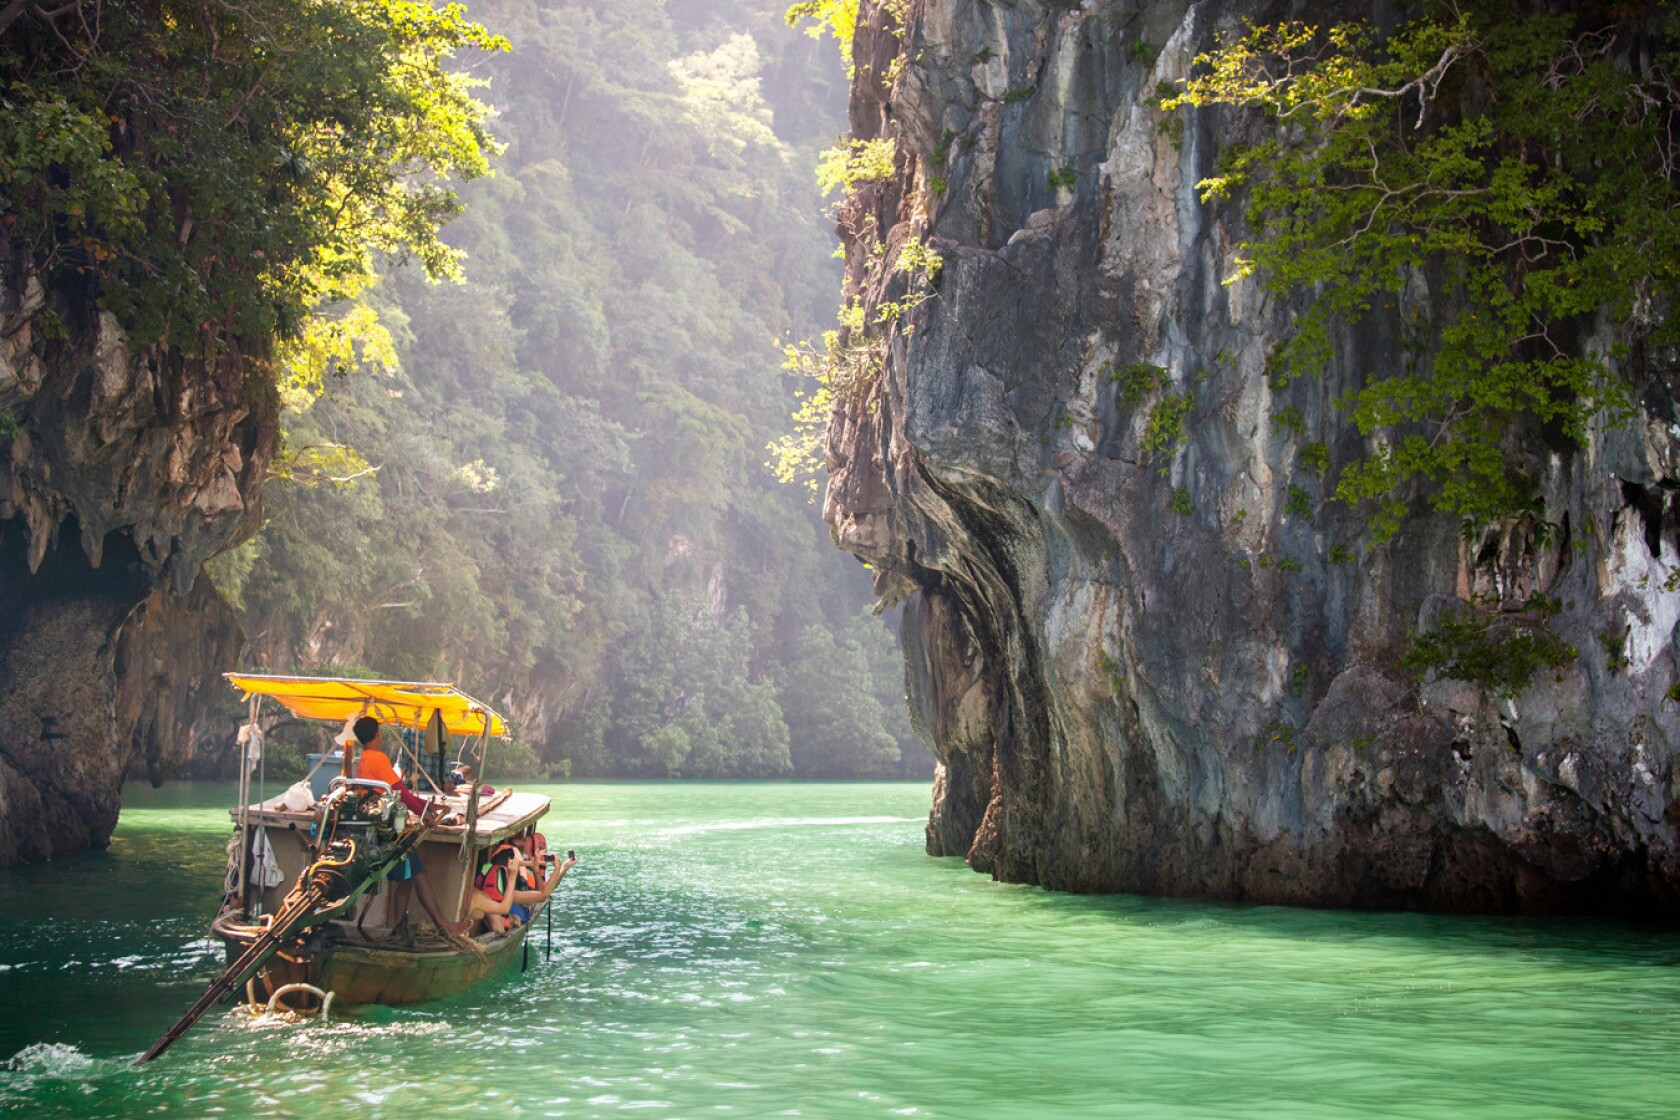 On the Andaman Sea in Thailand, a putt-putting boat will carry you to travel-poster fantasies